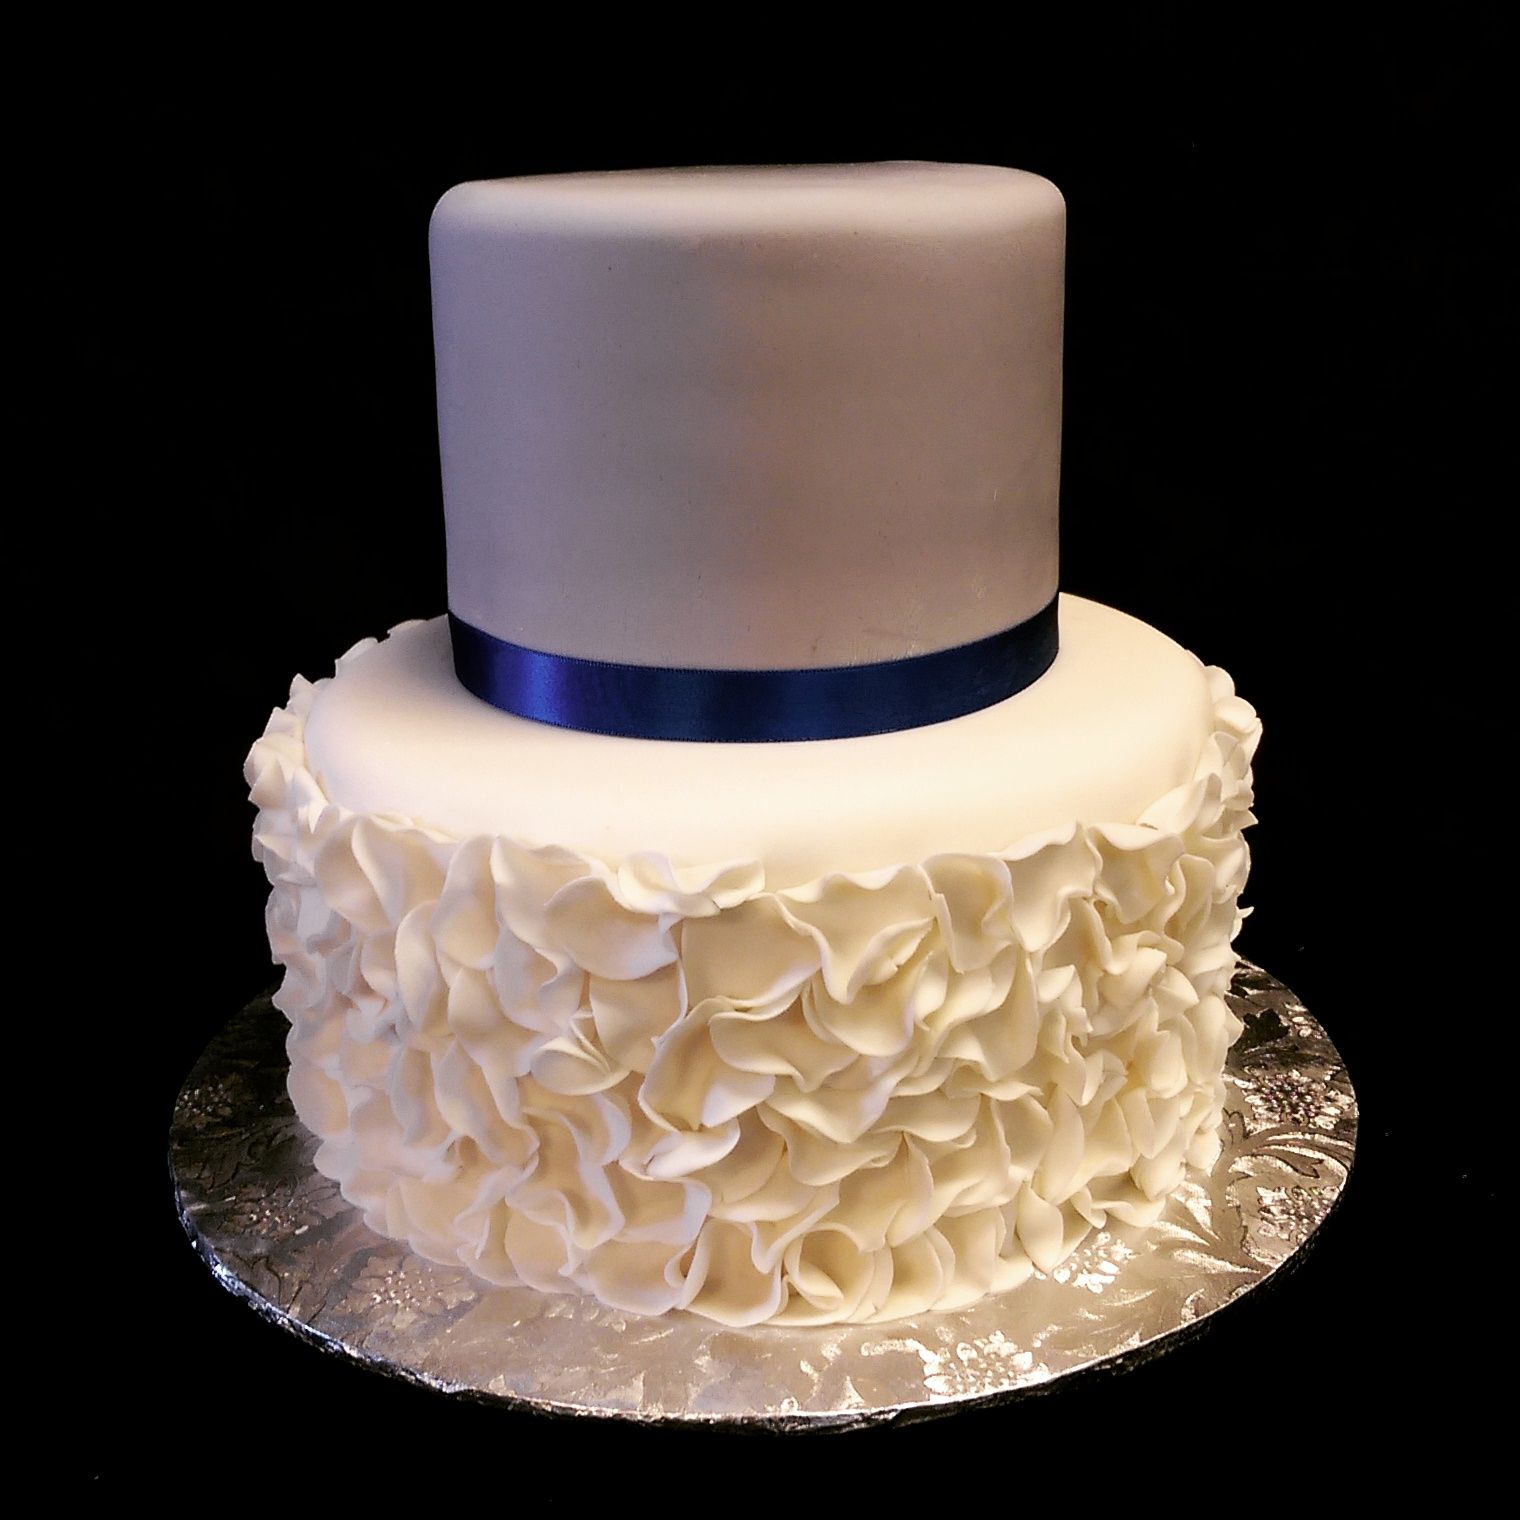 Simple fondant petal ruffle cake Seattle Wedding Cake www